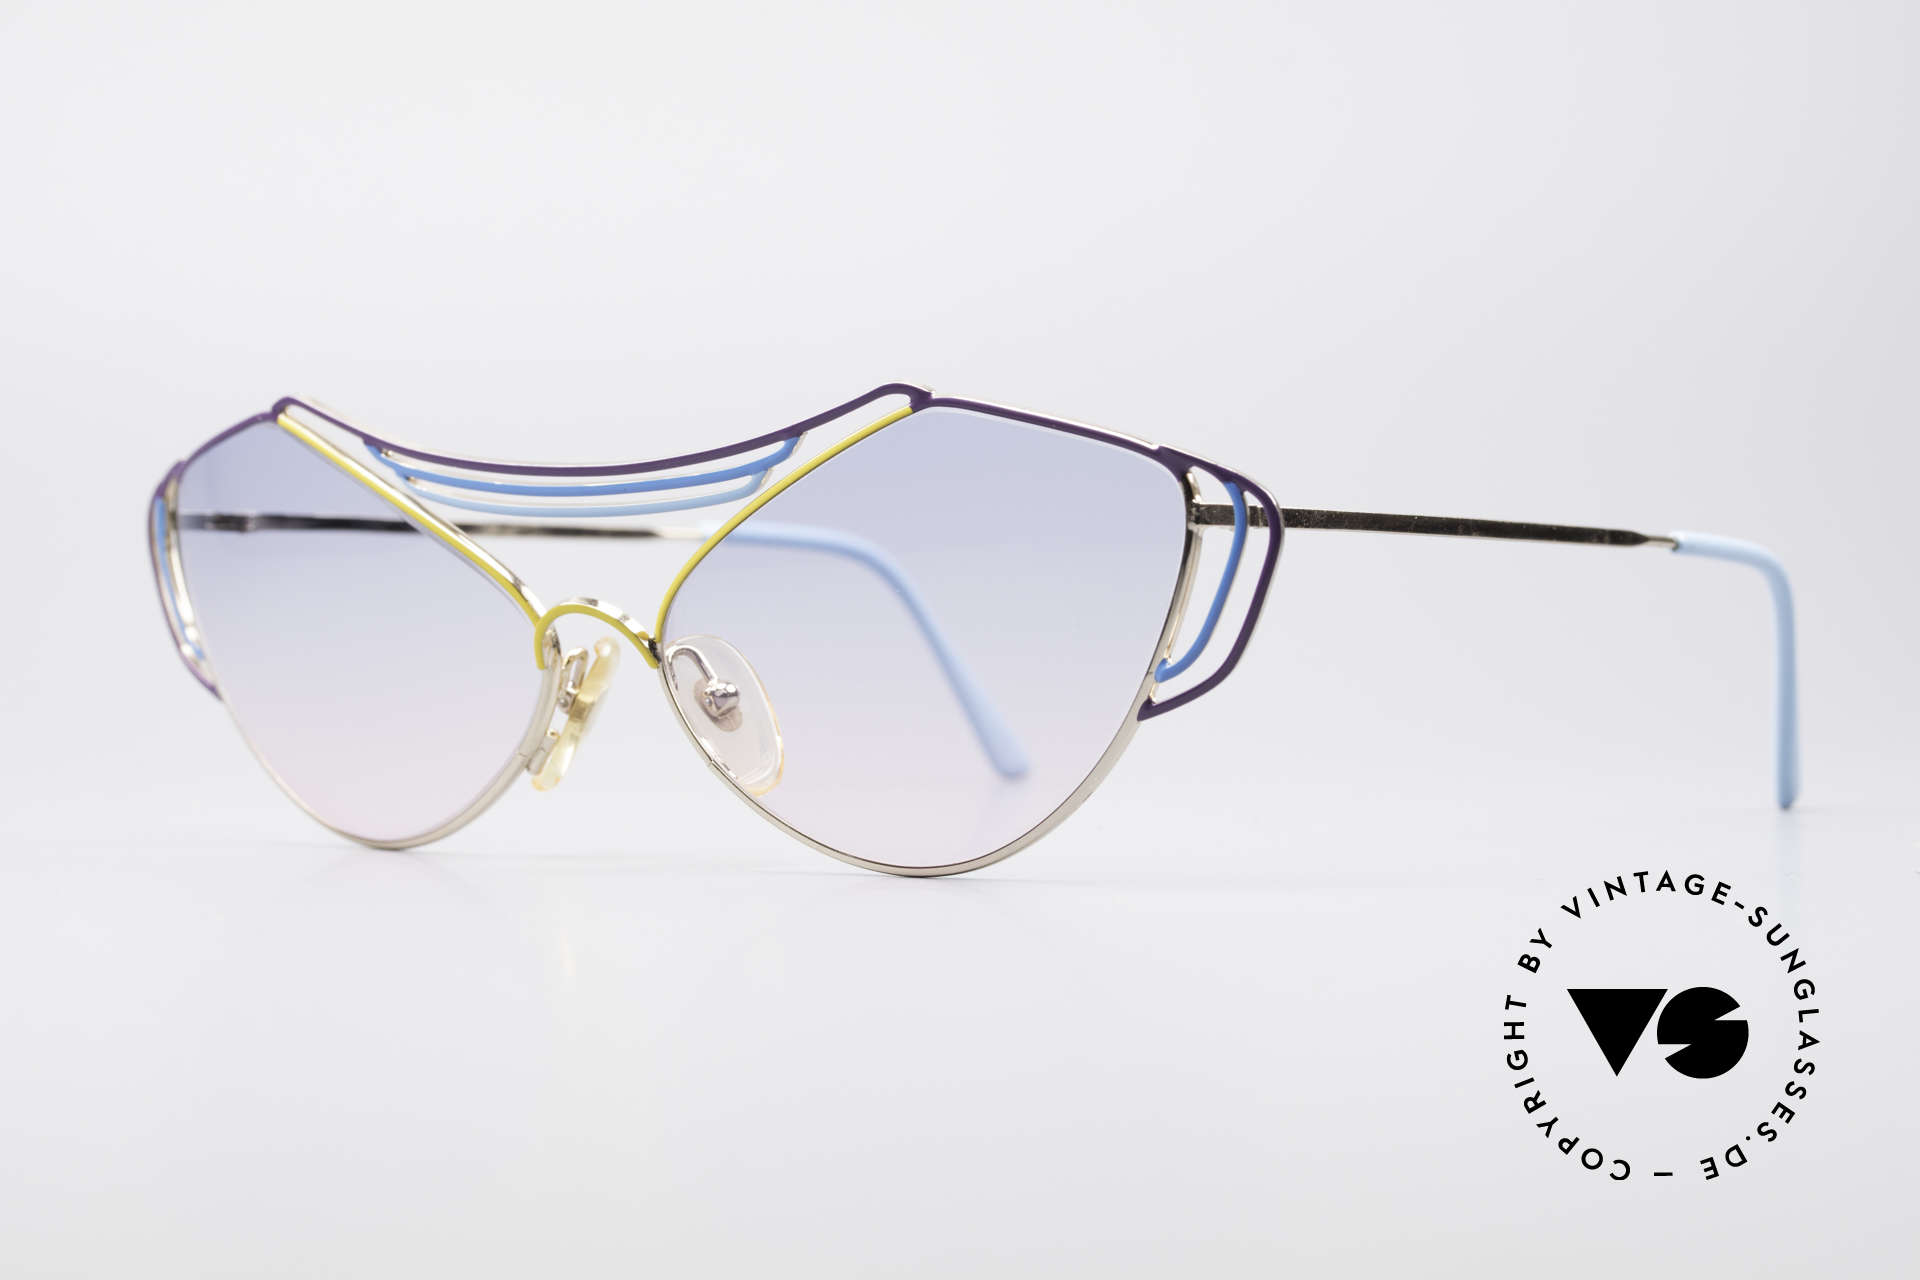 Casanova LC9 80's Art Sunglasses, gold-plated metal frame with a blue/yellow finish, Made for Women